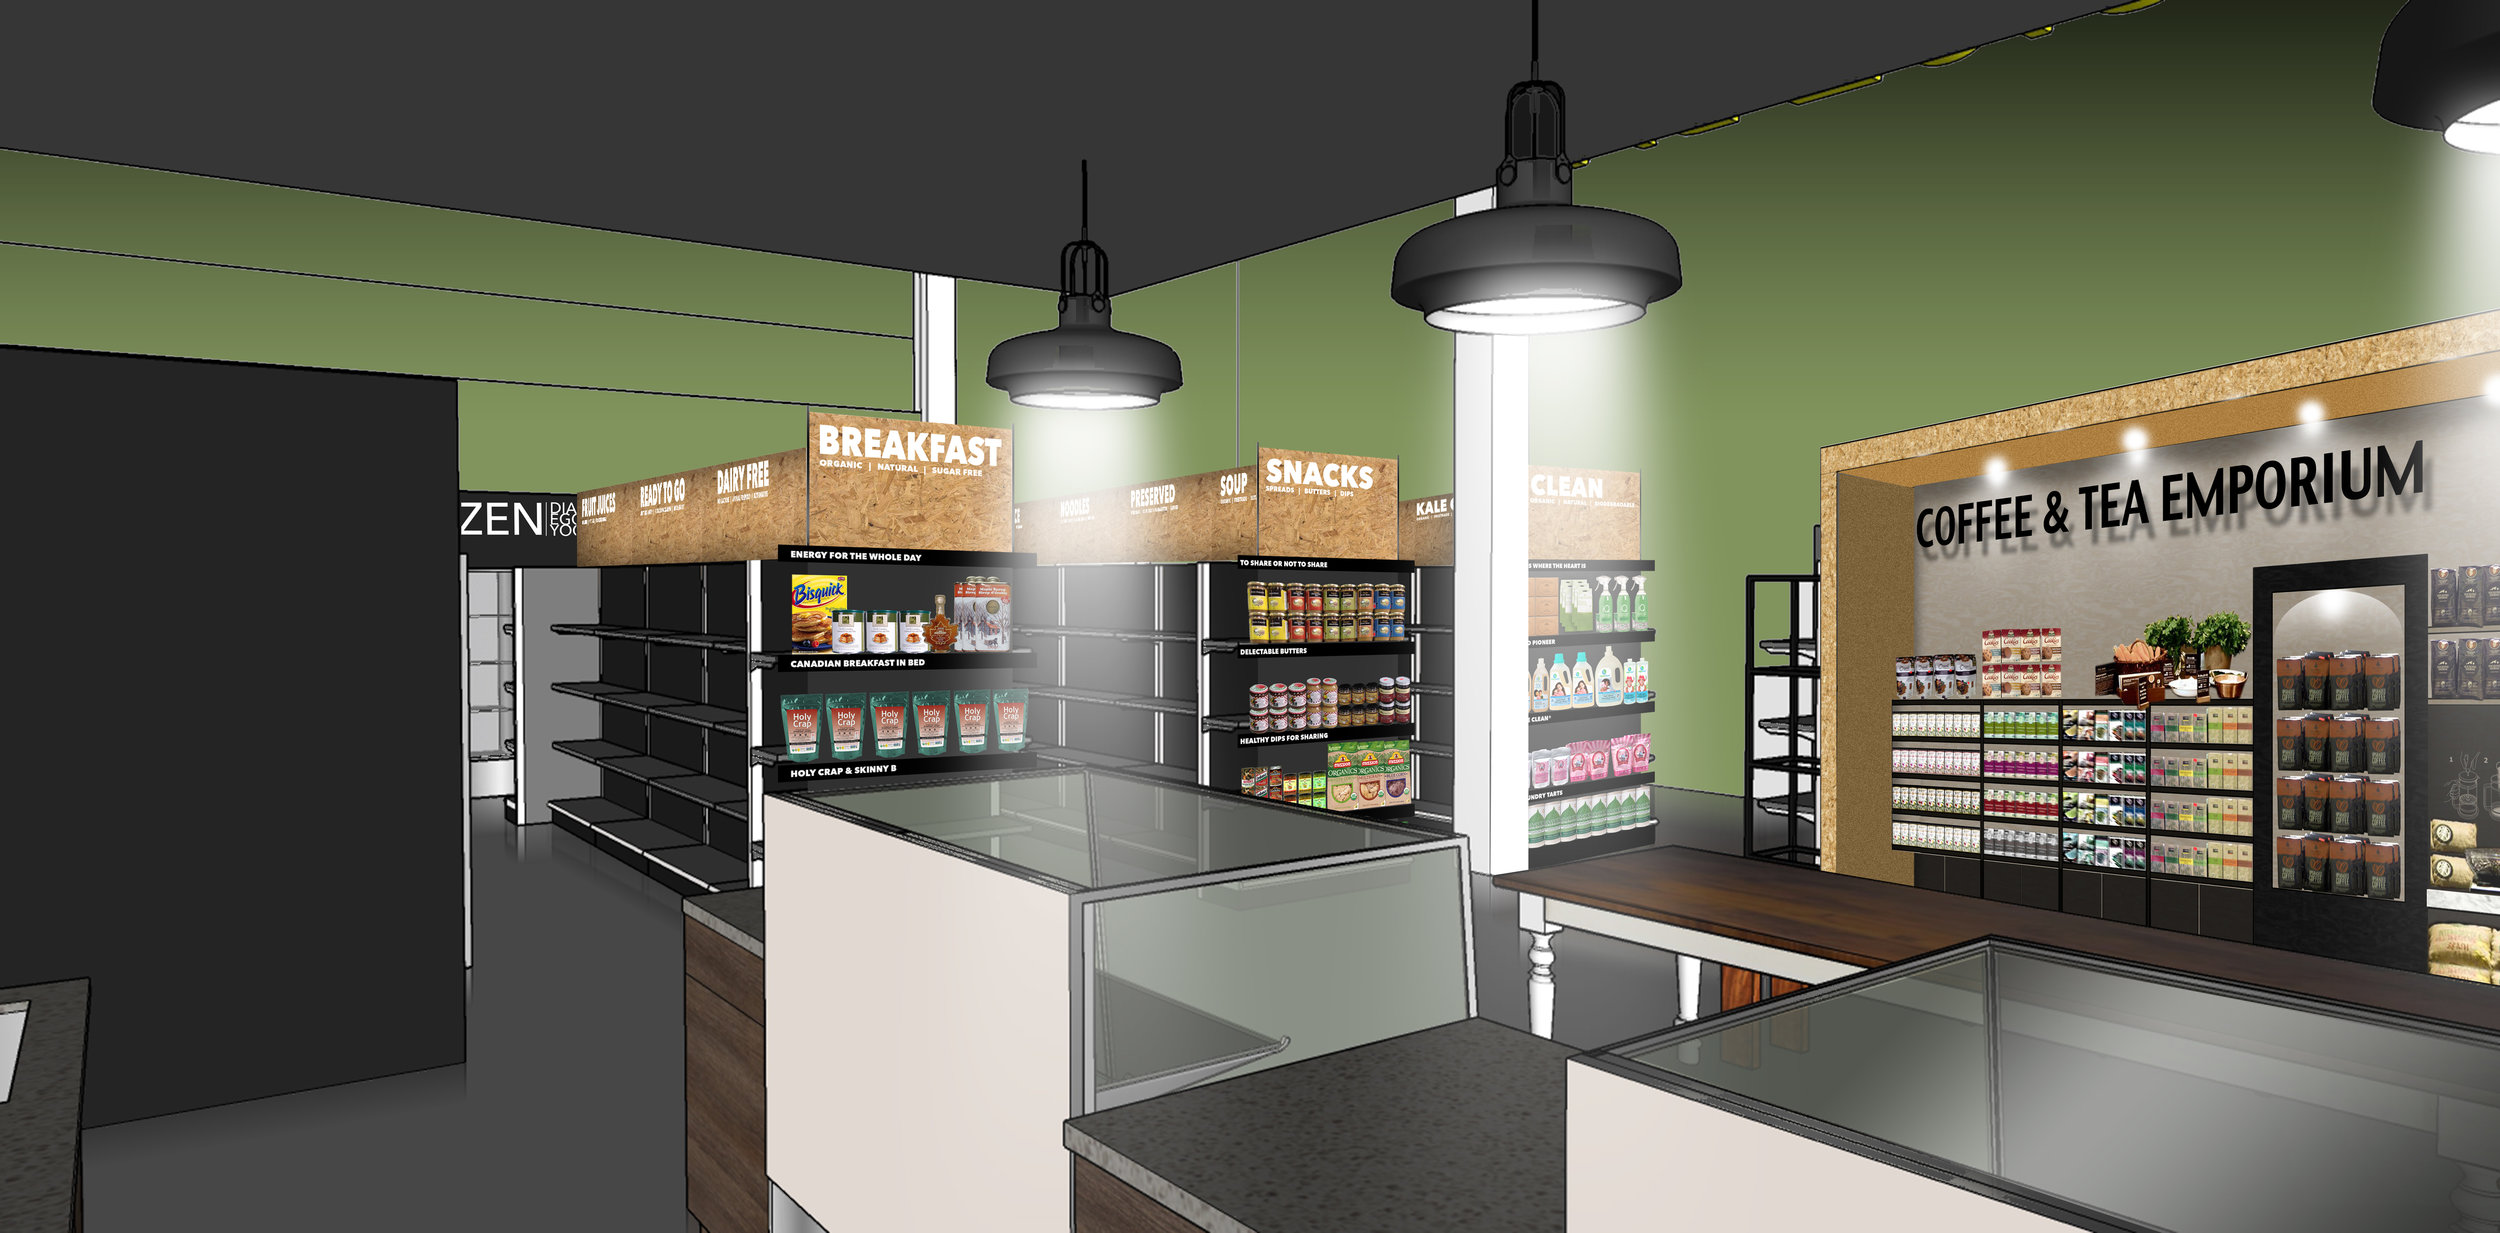 TNS FOOD STORE FINAL 4 (smoothie bar).jpg